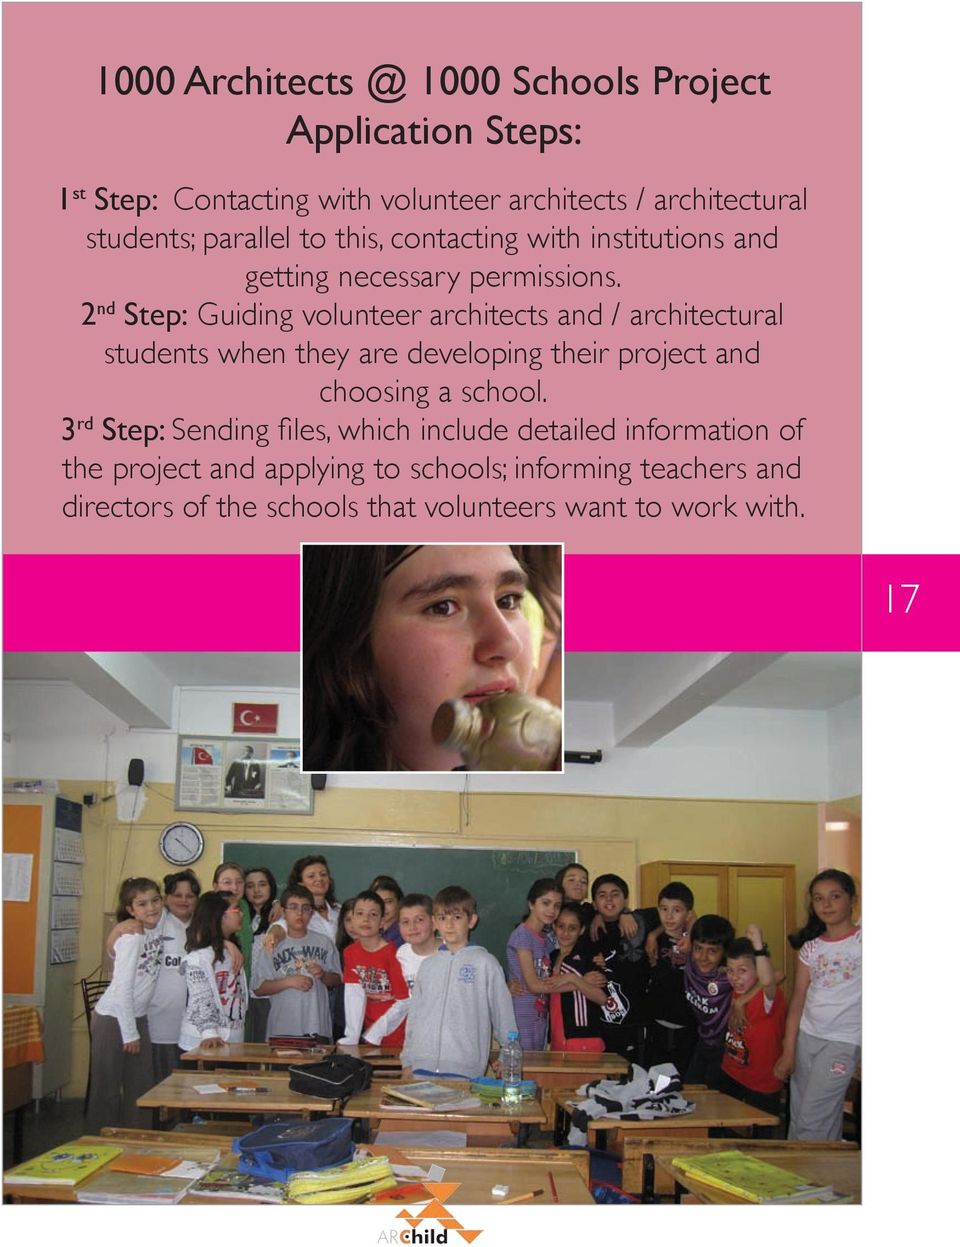 2 nd Step: Guiding volunteer architects and / architectural students when they are developing their project and choosing a school.